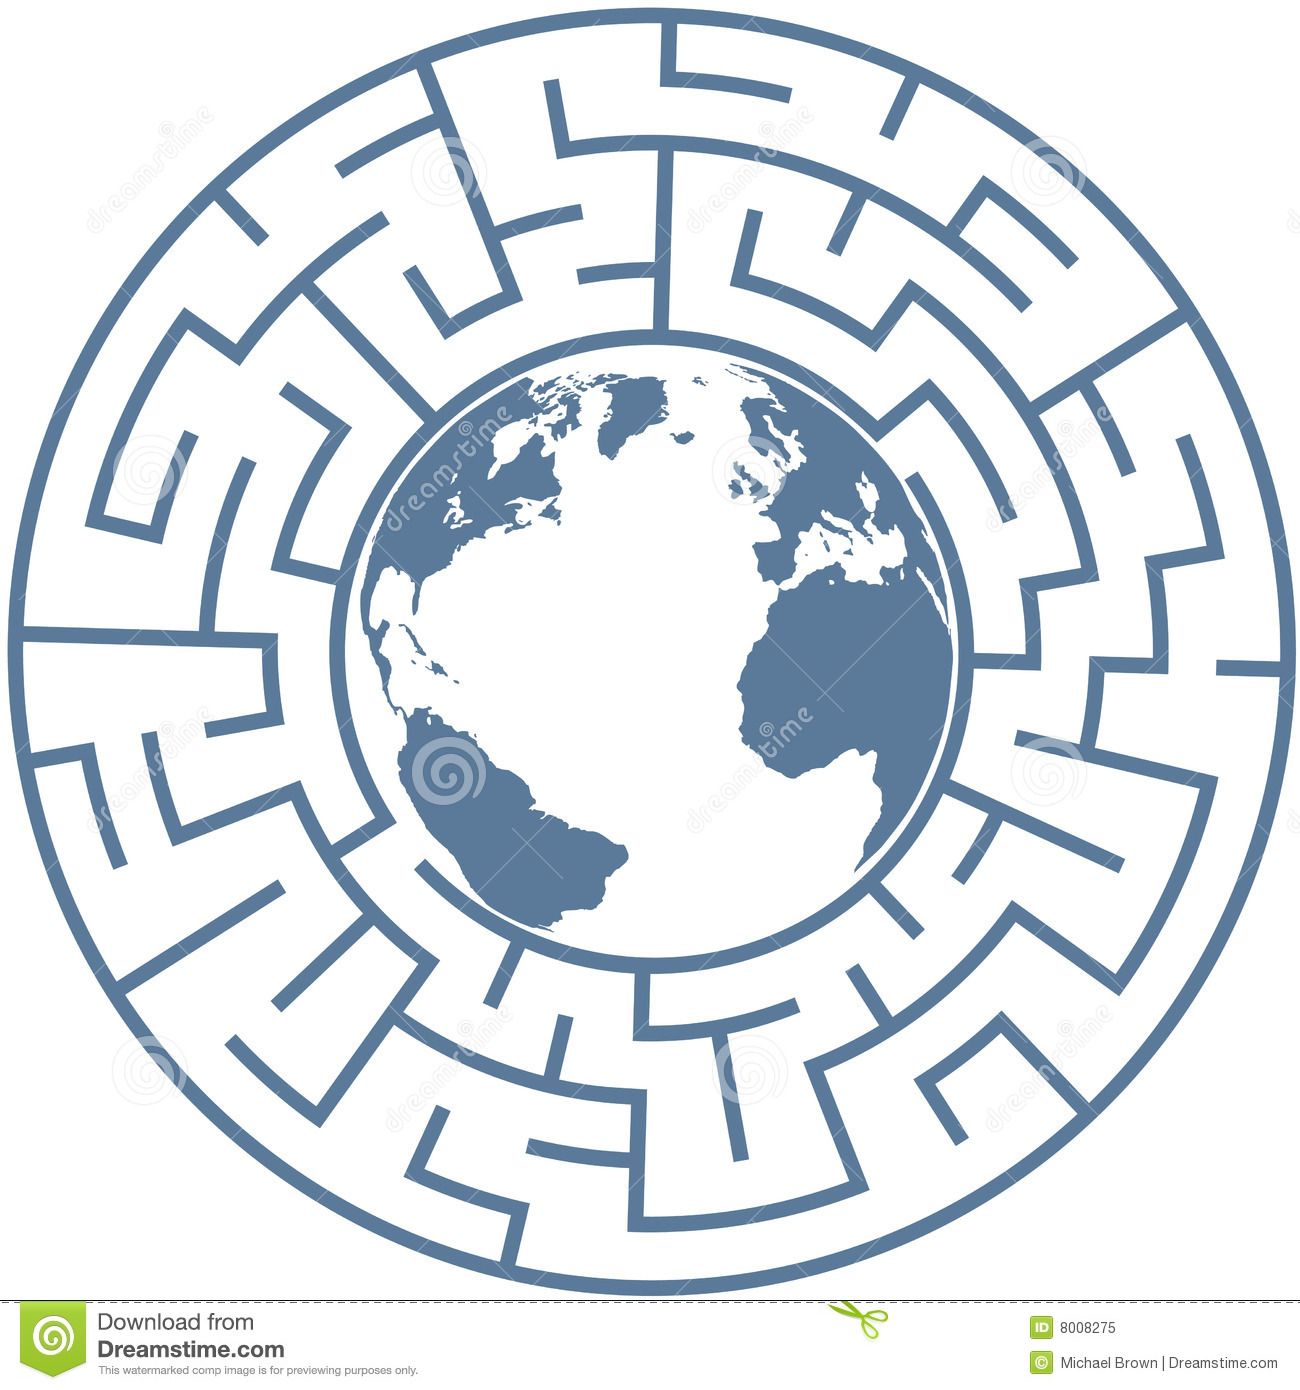 Planet Earth In Radial Maze World Puzzle Stock Vector